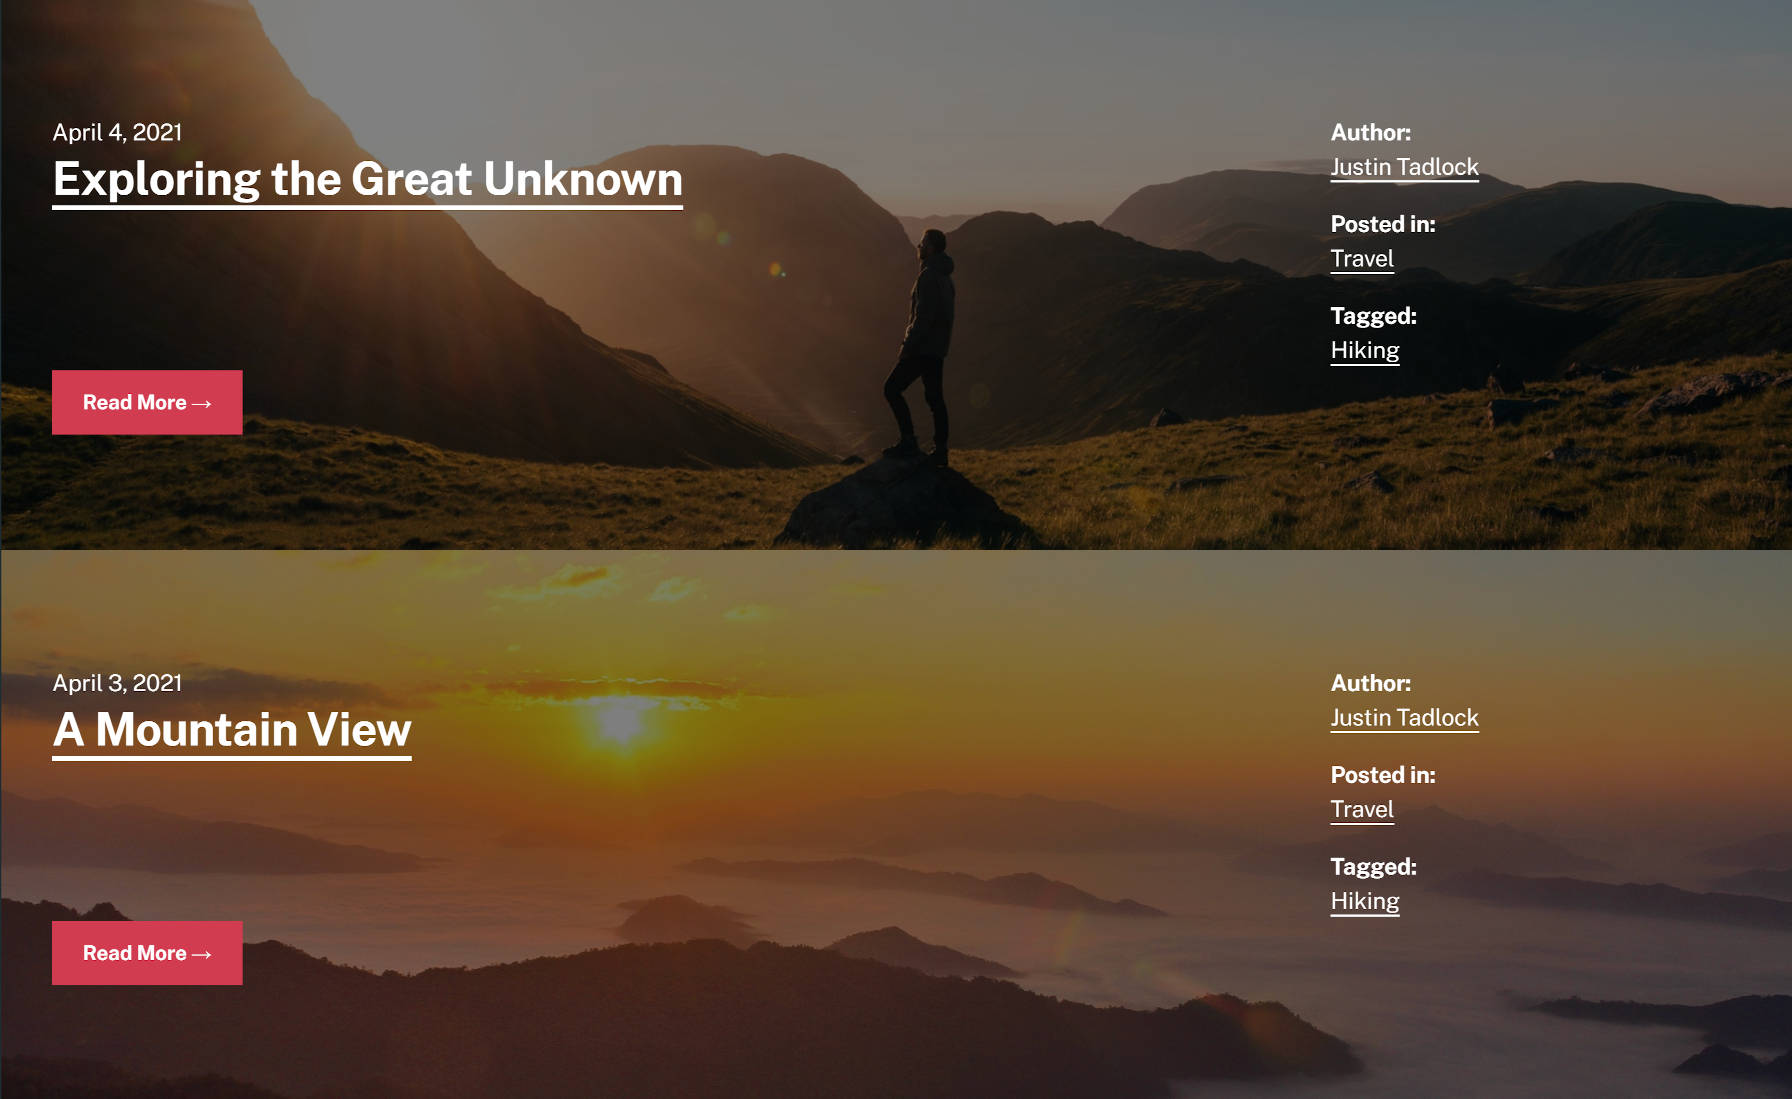 Two blog posts stacked upon each other. Each has a custom background image that spans the page.